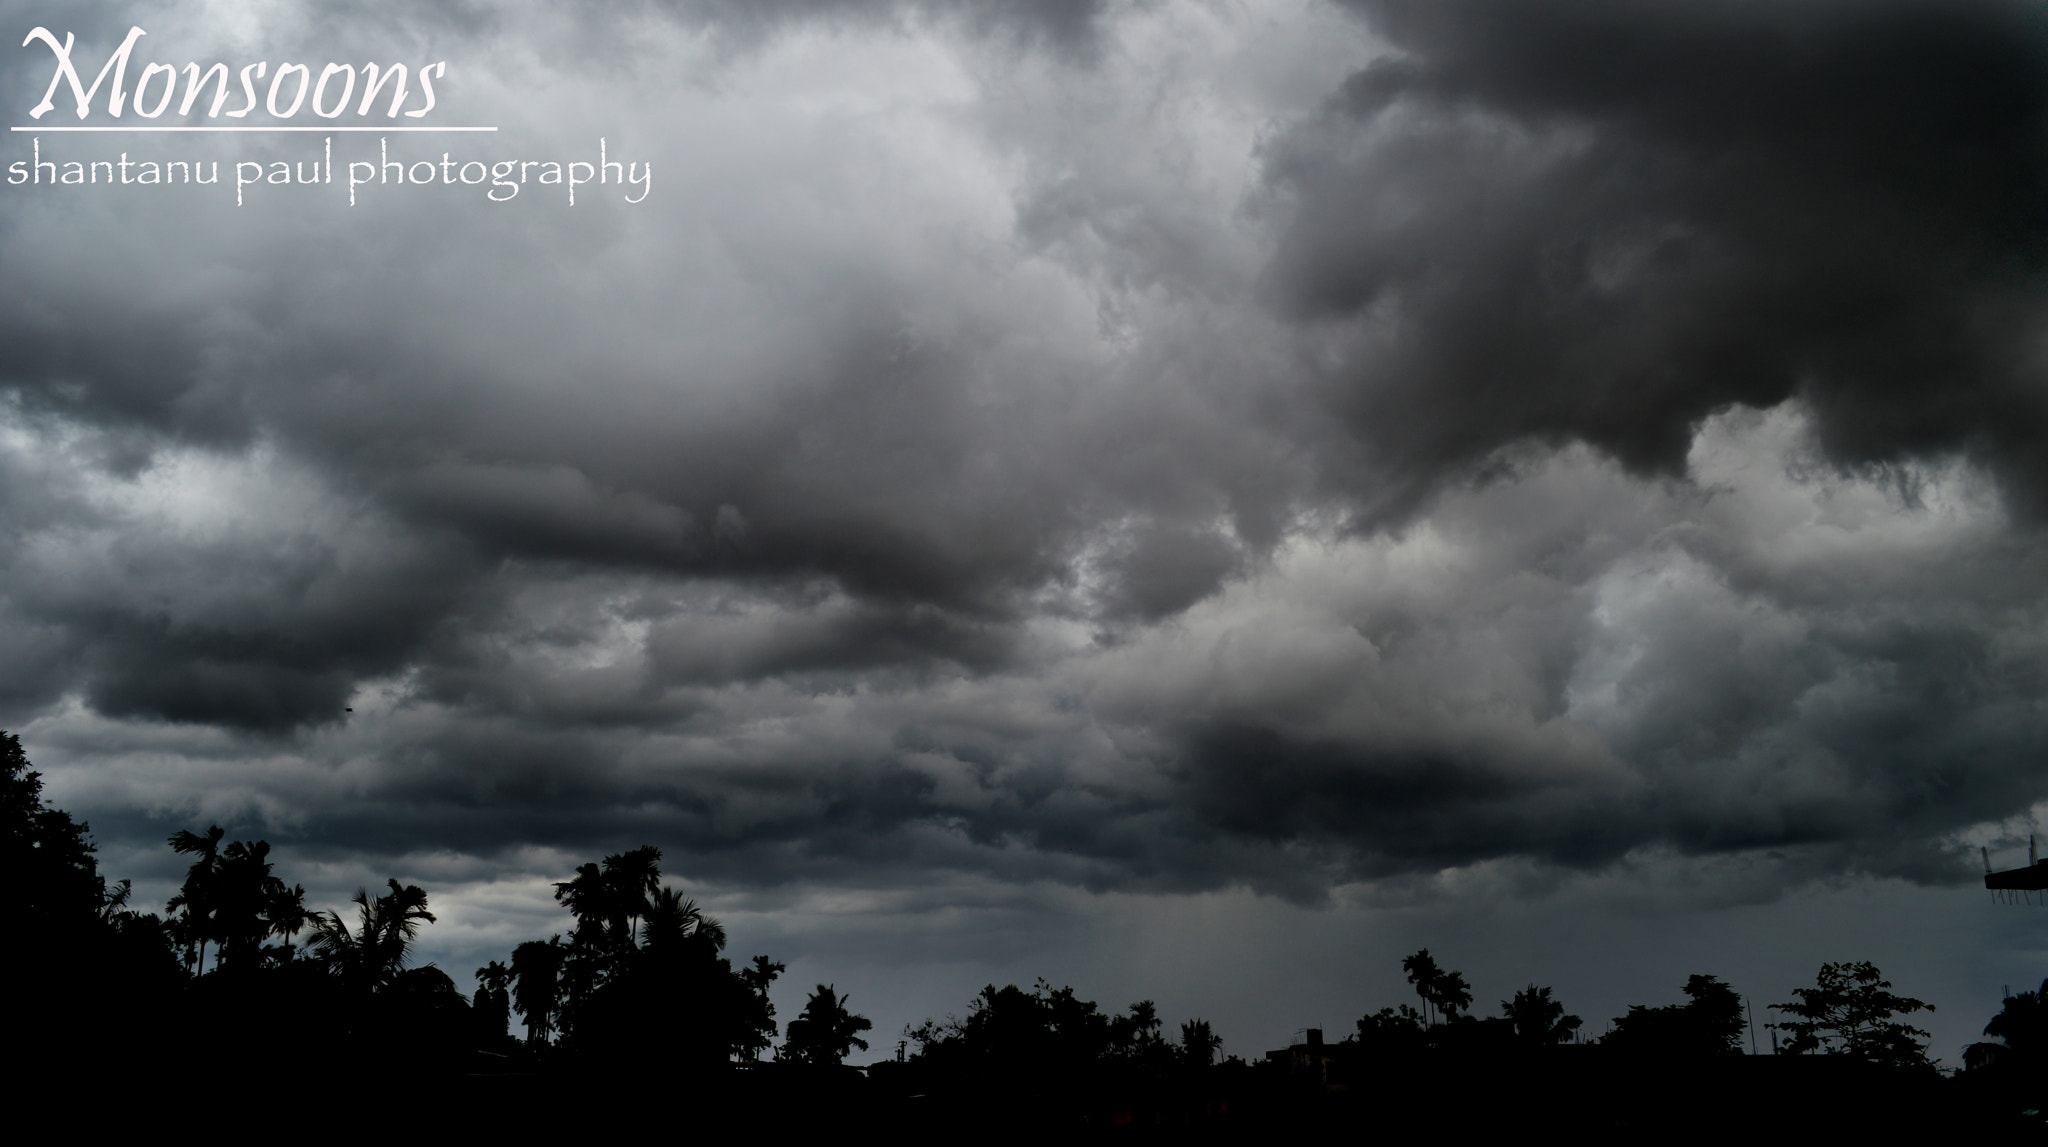 Photograph Monsoons overhead by Shantanu Paul on 500px